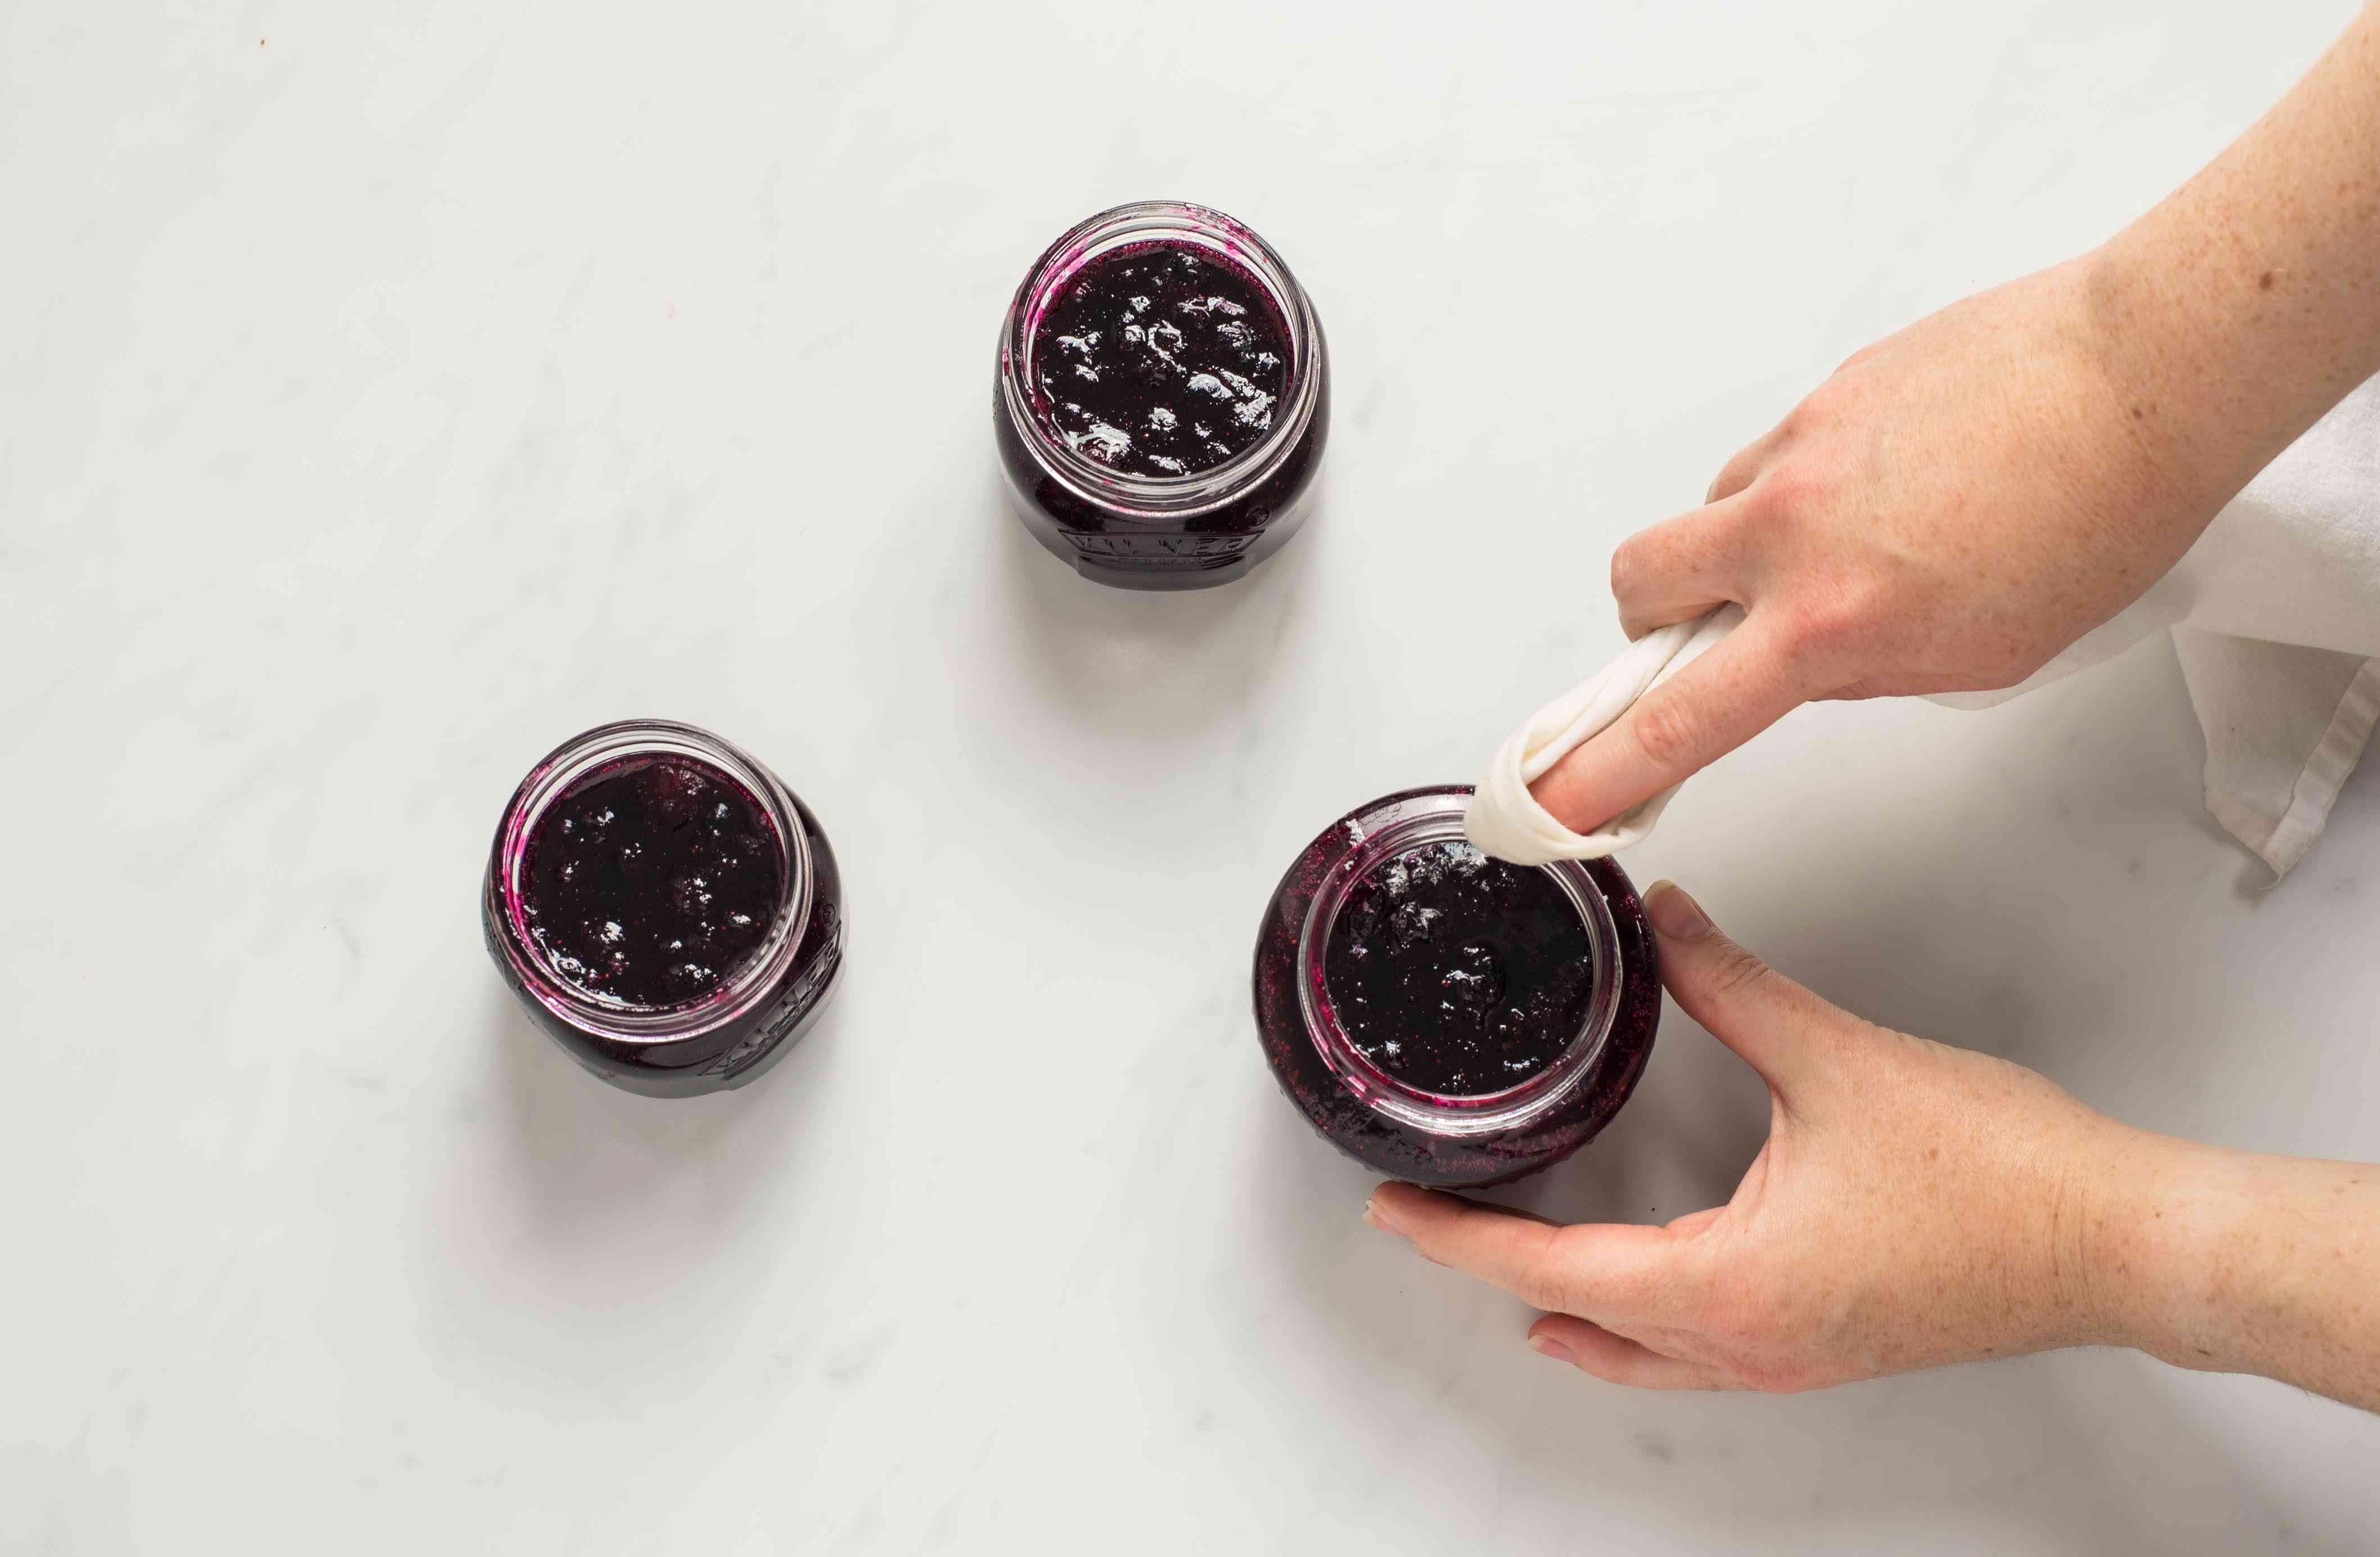 Wiping the rims of the jars with a damp cloth